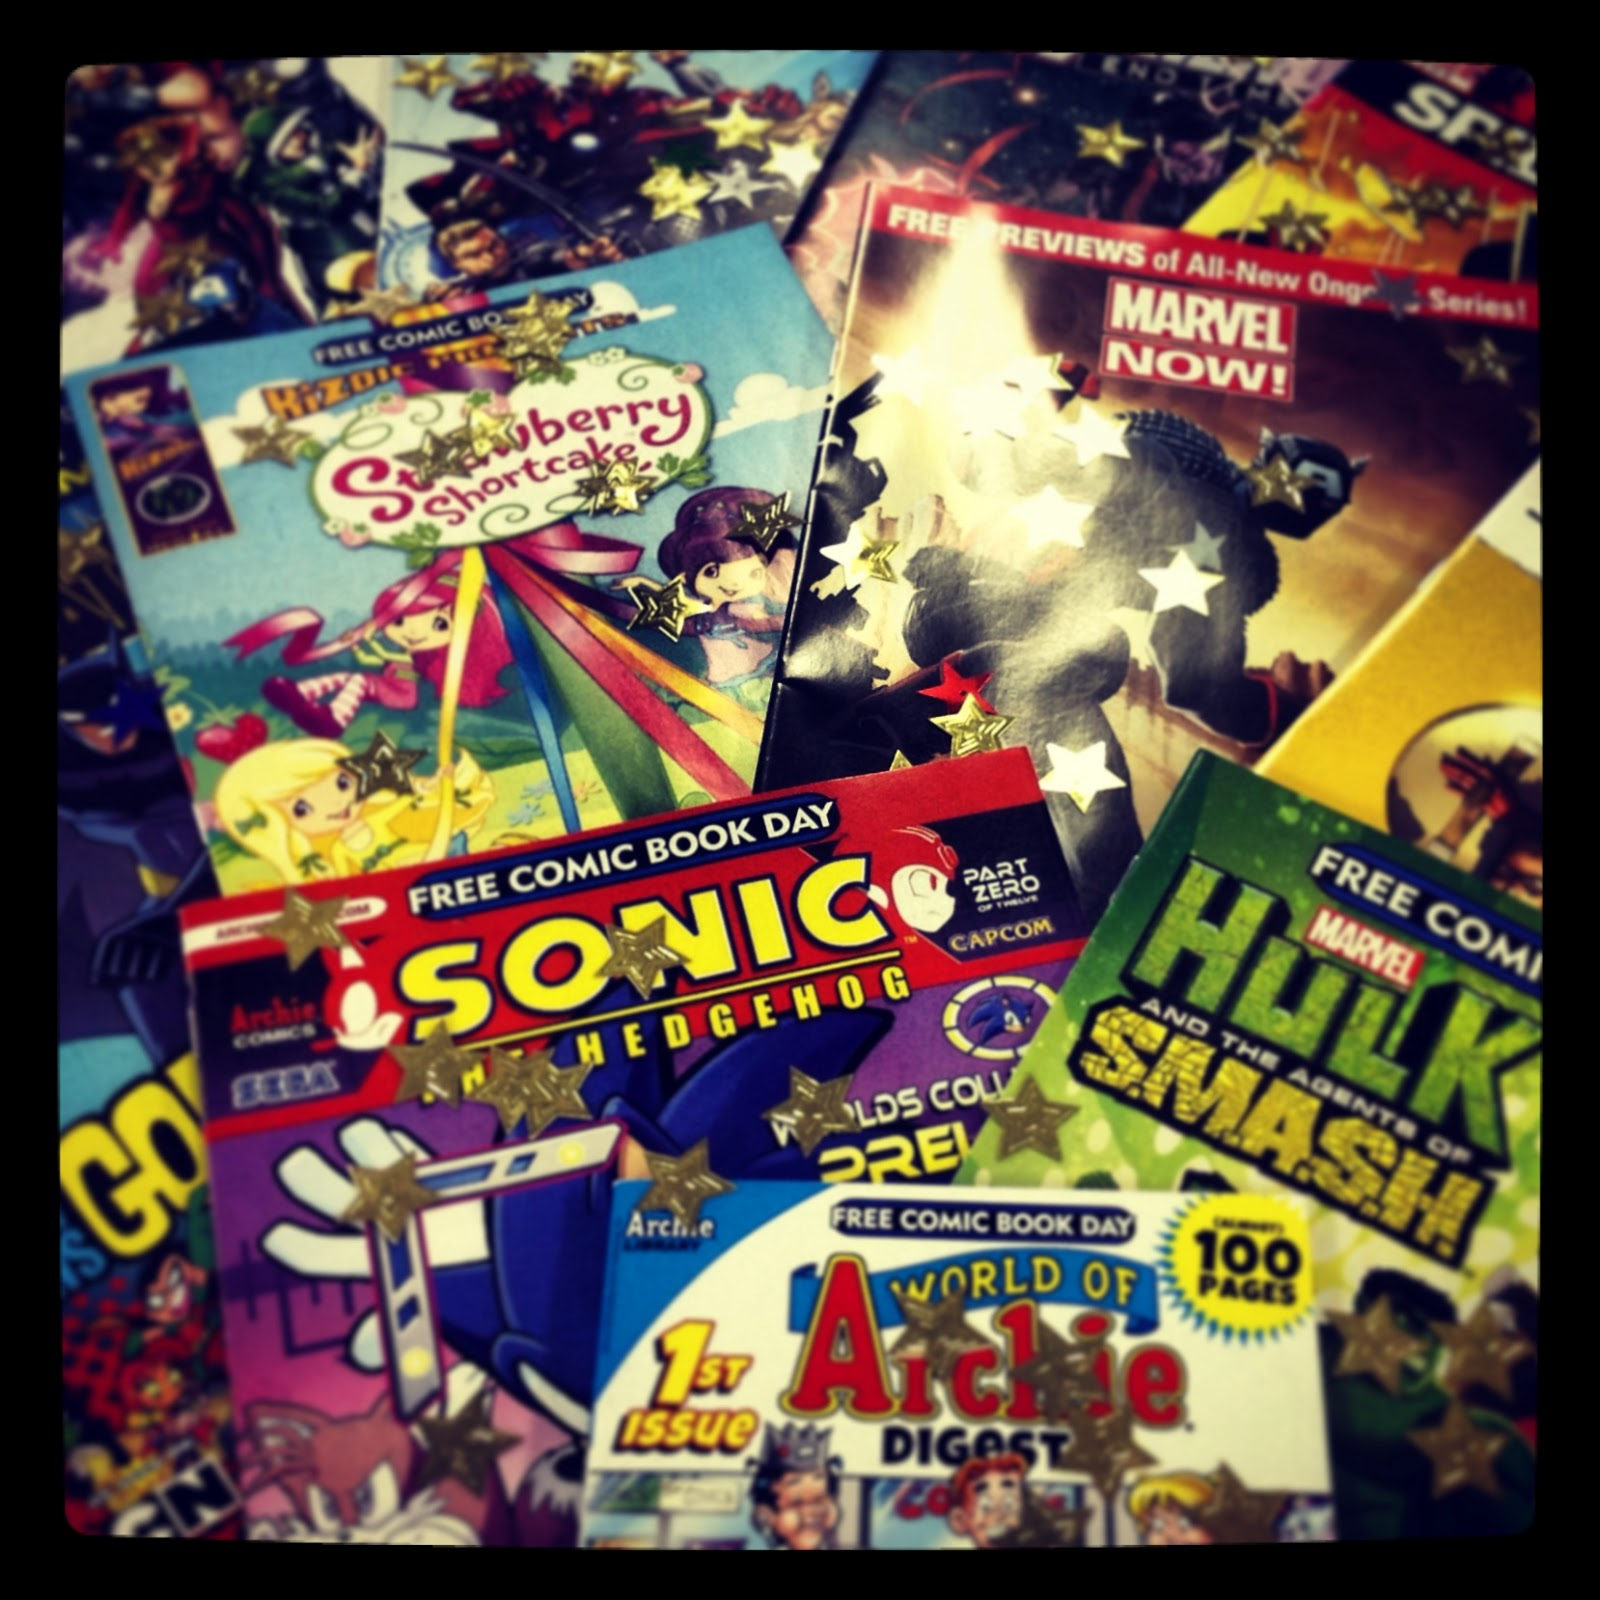 Free Comic Book Day Parramatta: News/Events @ Your Library: Free Comic Book Day Hits This